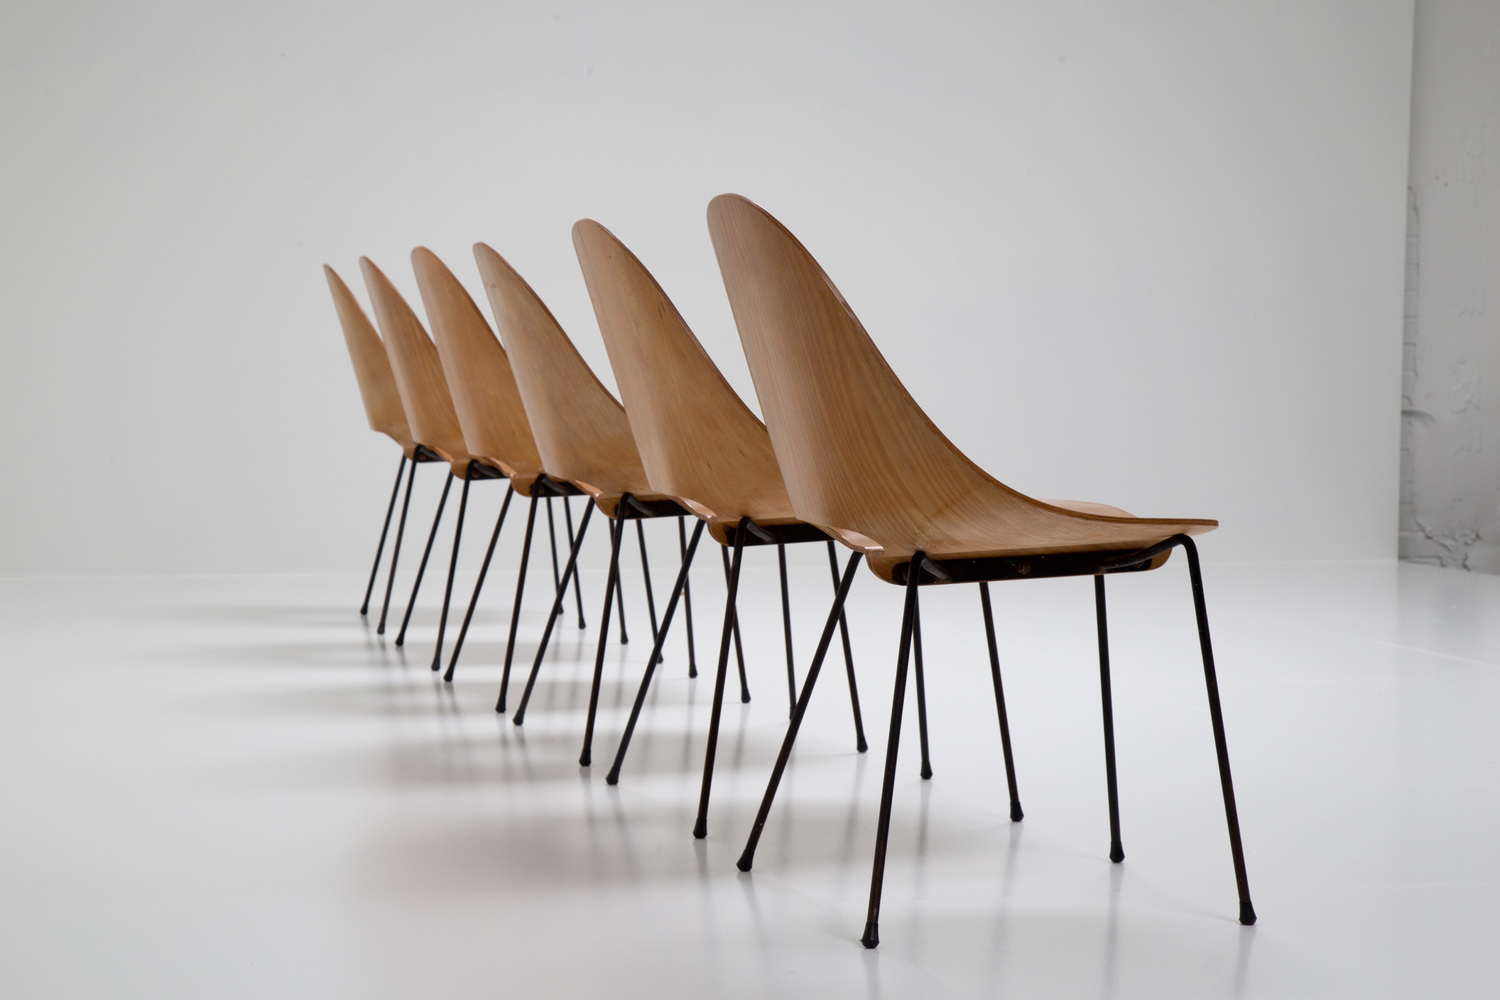 Beautiful set of 6 chairs by Carlo Ratti for Societa Compensati Curvati